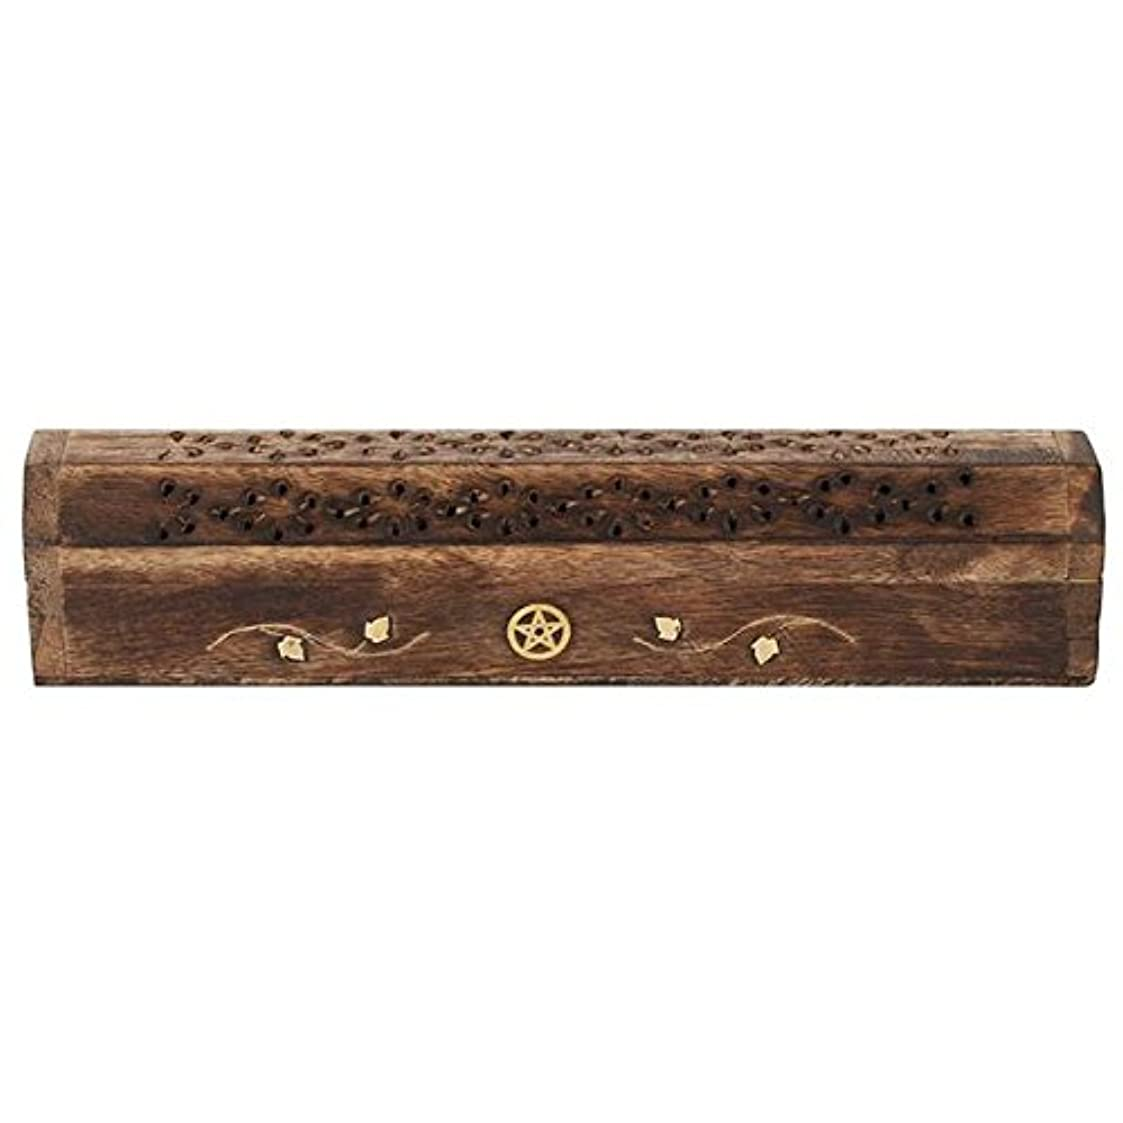 脆い著名な鷹Mangowood Incense Box with Brass Pentagram Inlay